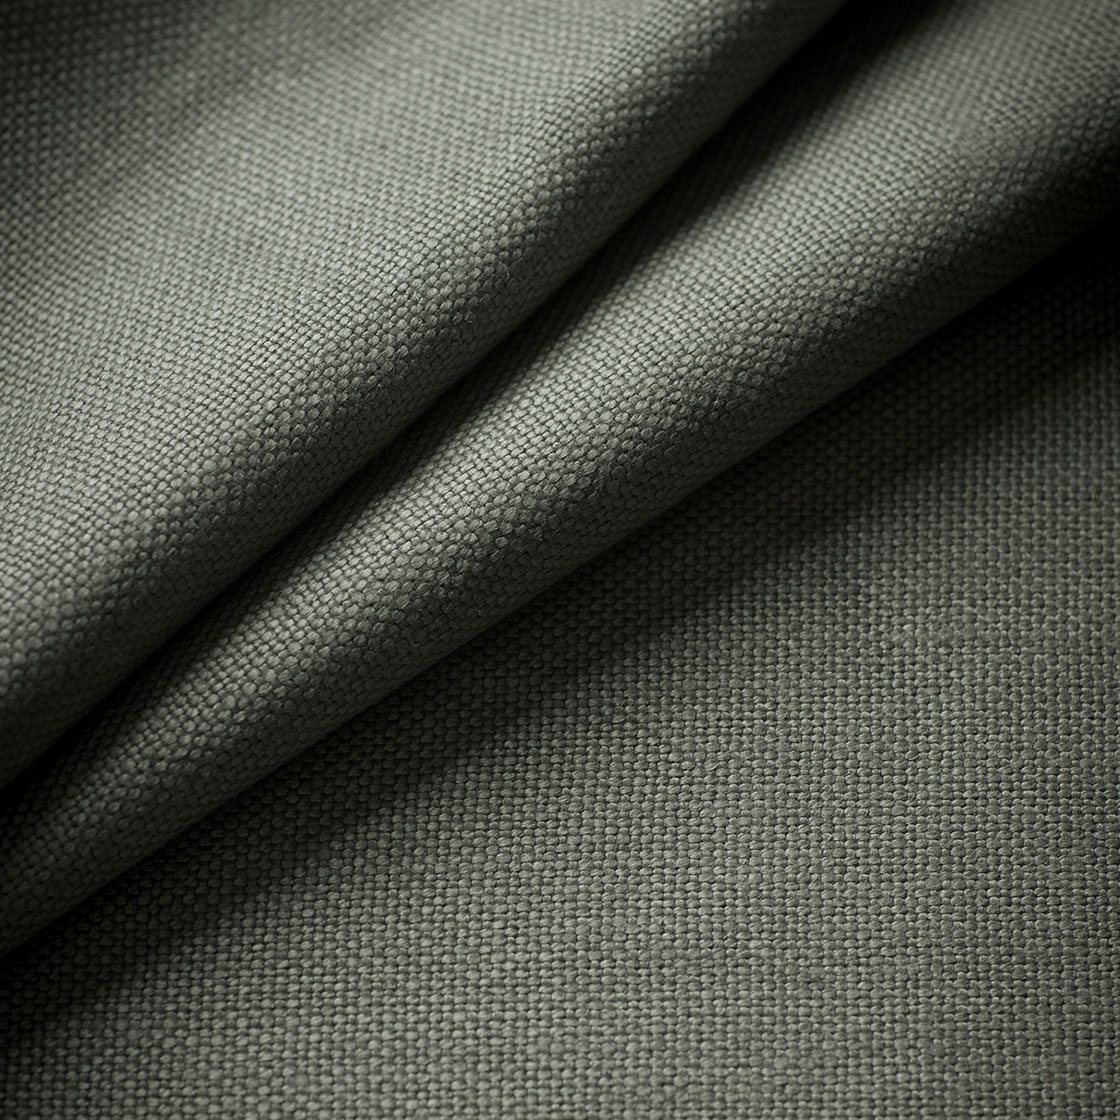 Donegal Linen - Laurel - Beaumont & Fletcher - Beaumont & Fletcher